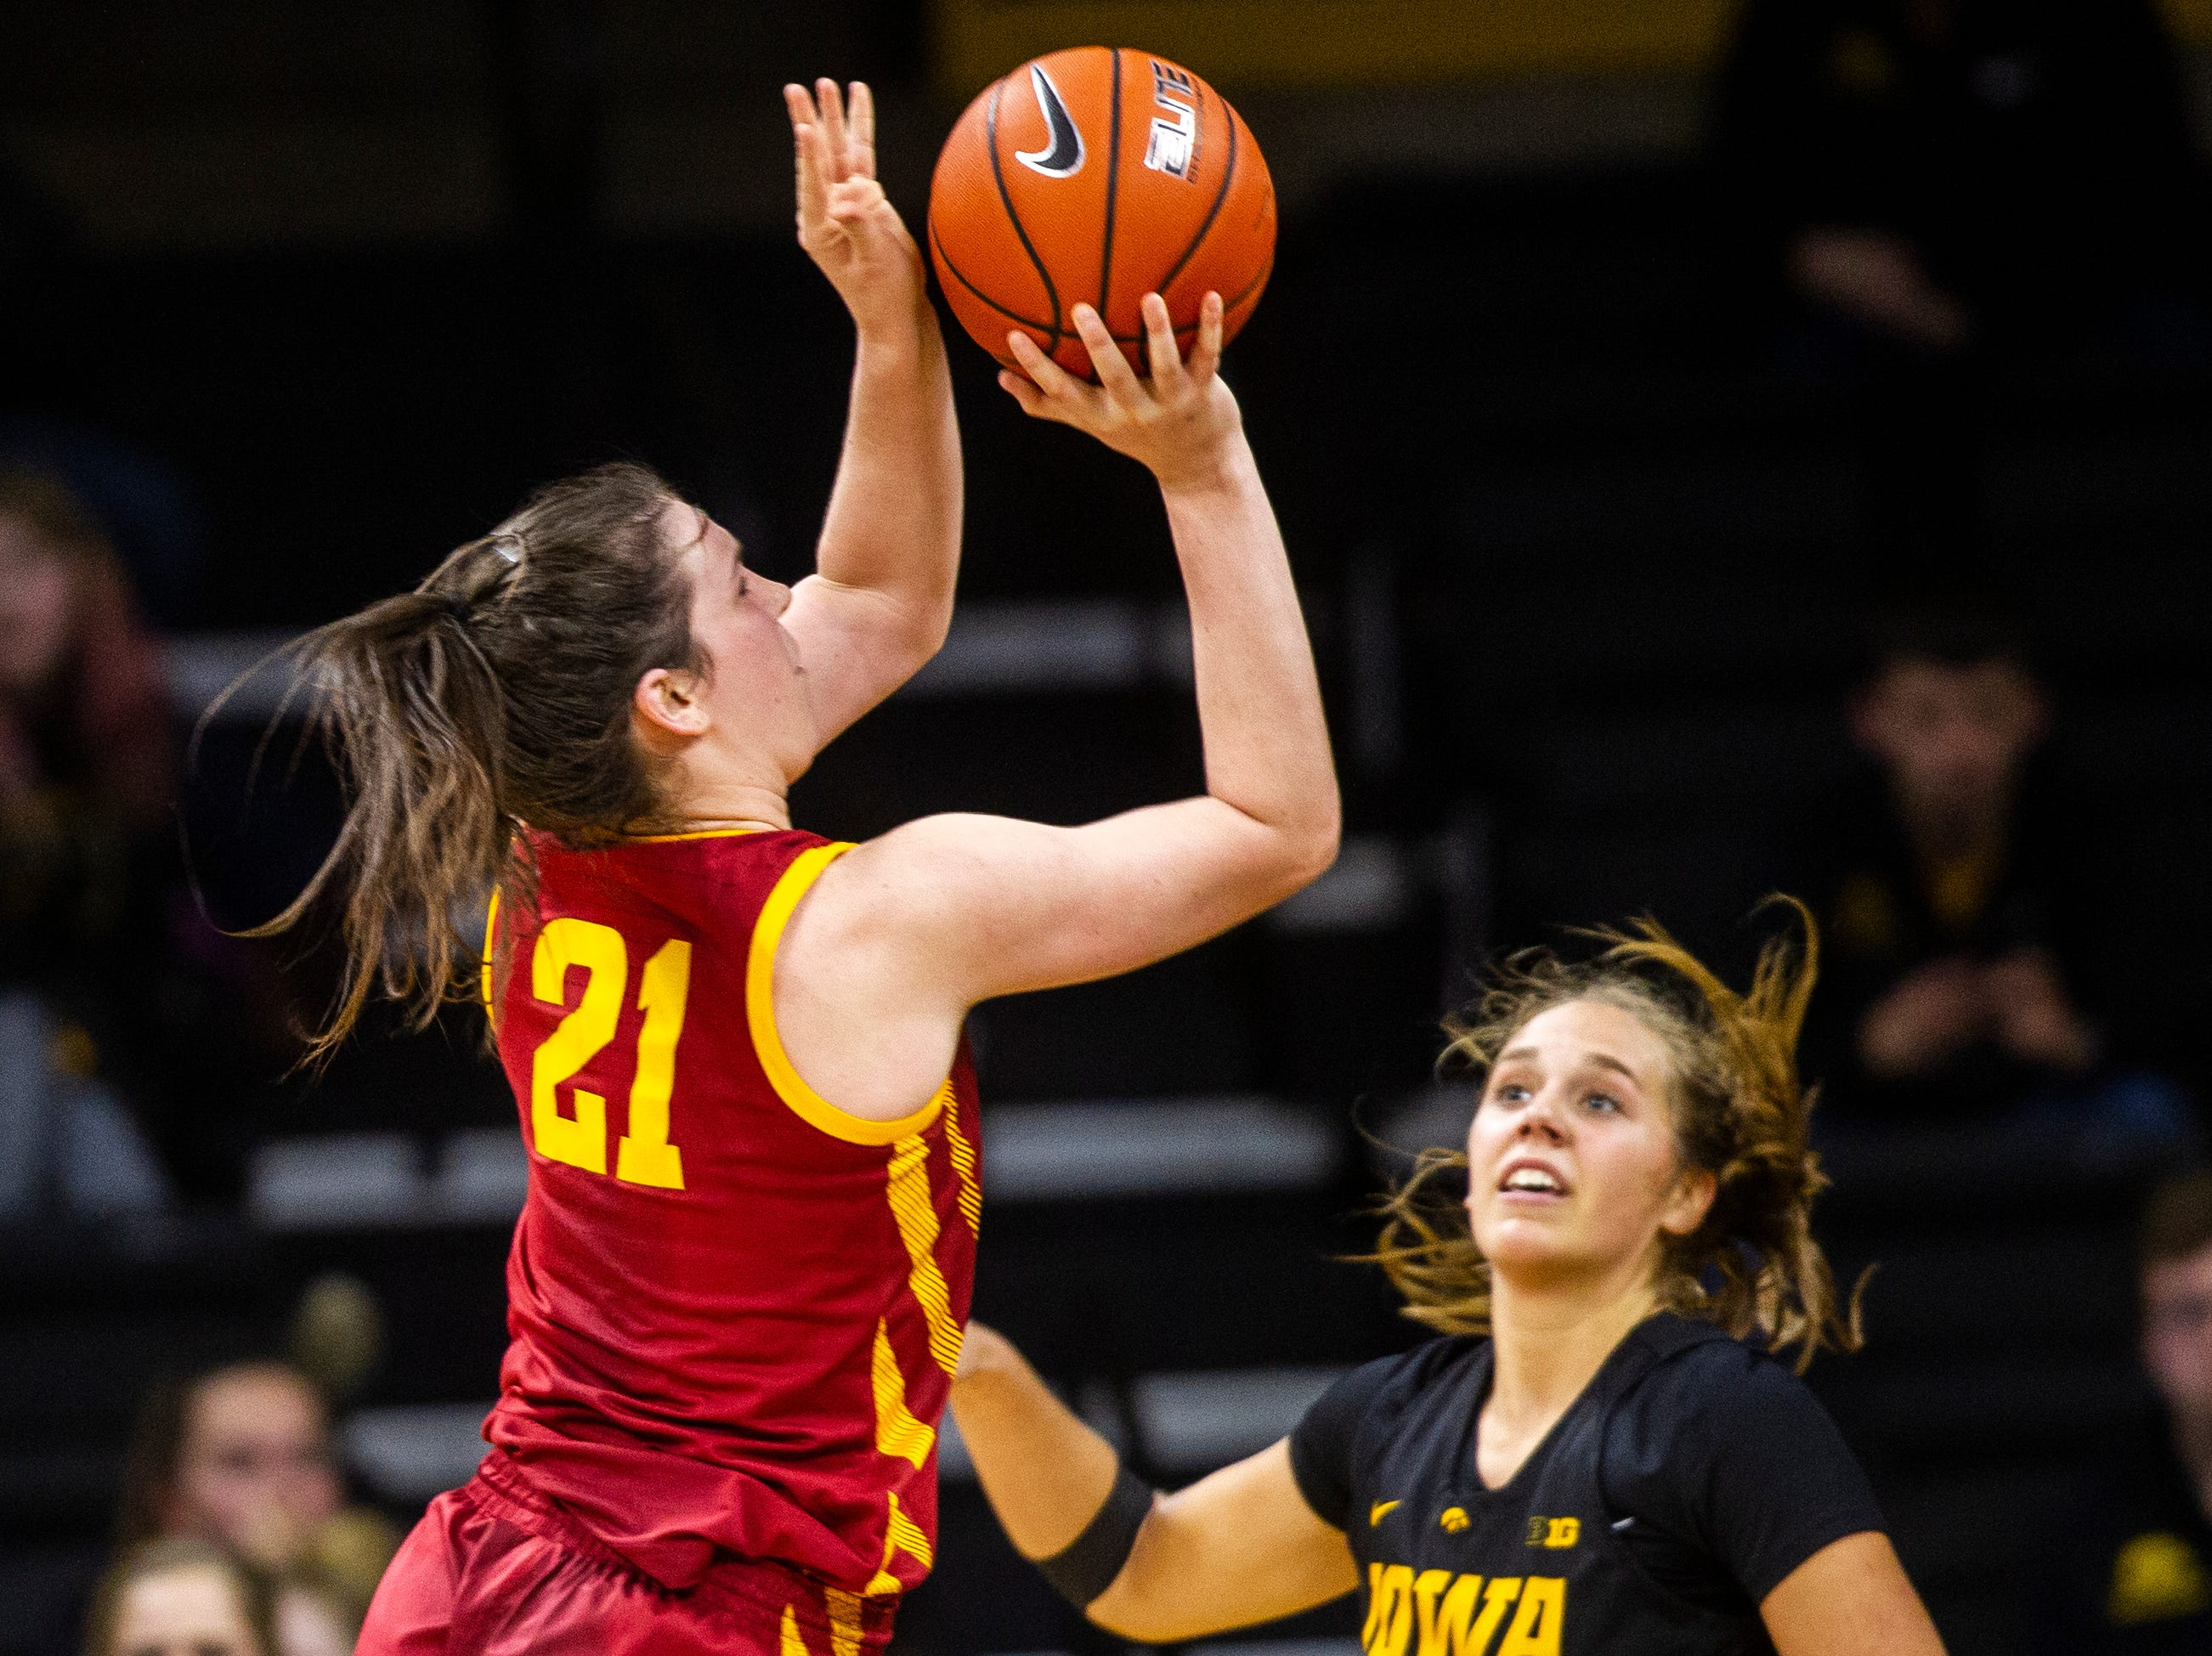 Iowa State guard Bridget Carleton (21) attempts a basket past Iowa guard Kathleen Doyle during a Cy-Hawk series NCAA women's basketball game on Wednesday, Dec. 5, 2018, at Carver-Hawkeye Arena in Iowa City.